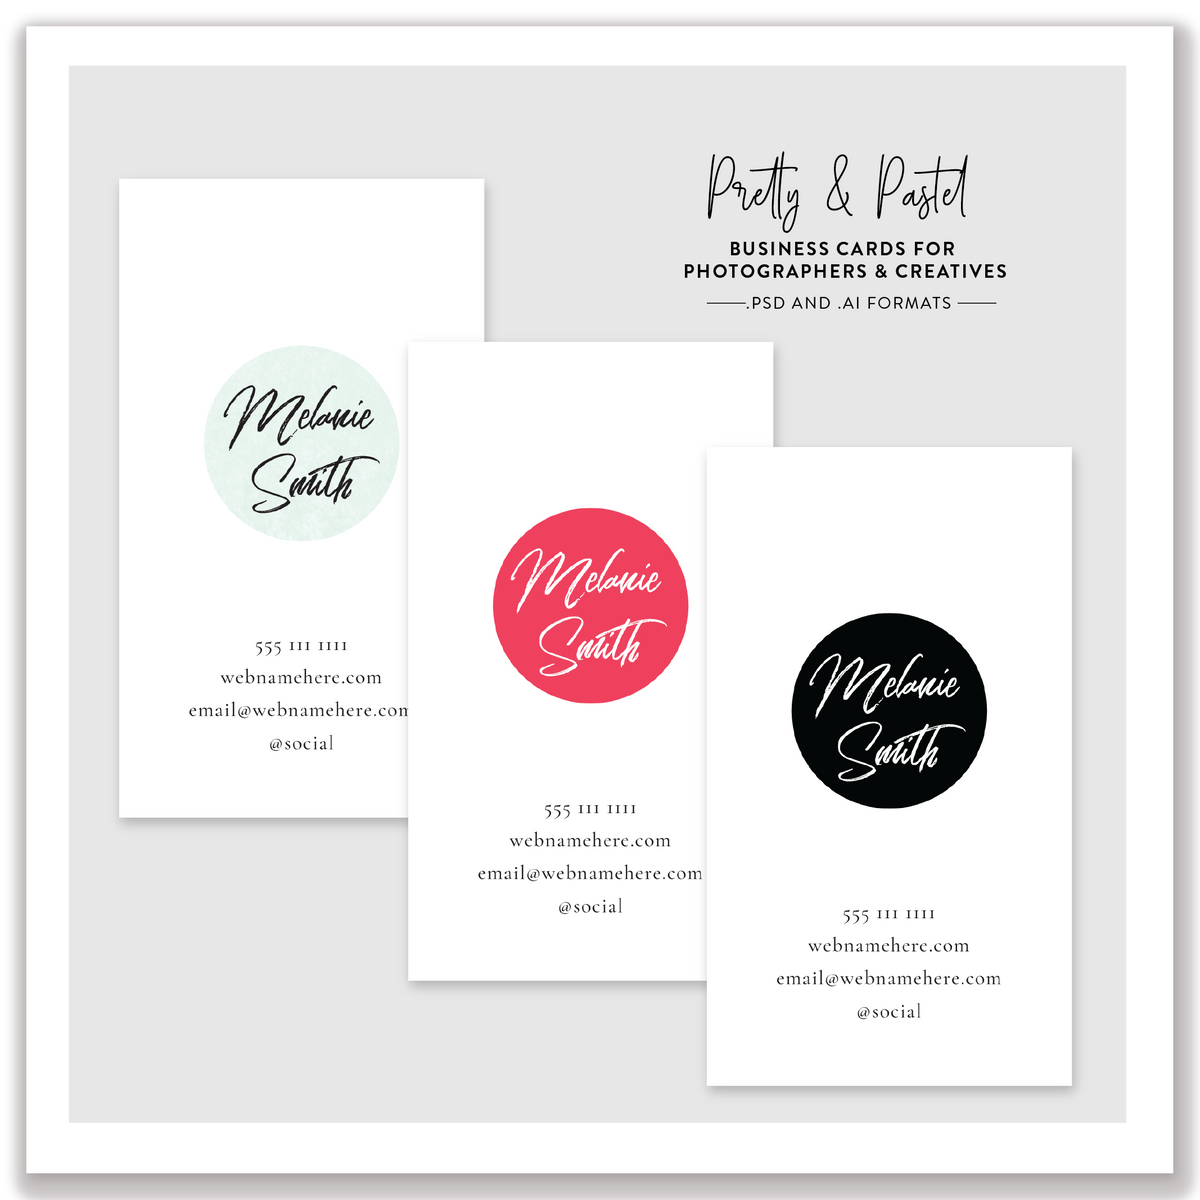 Pretty and Pastel Business Cards for Photographers & Creatives